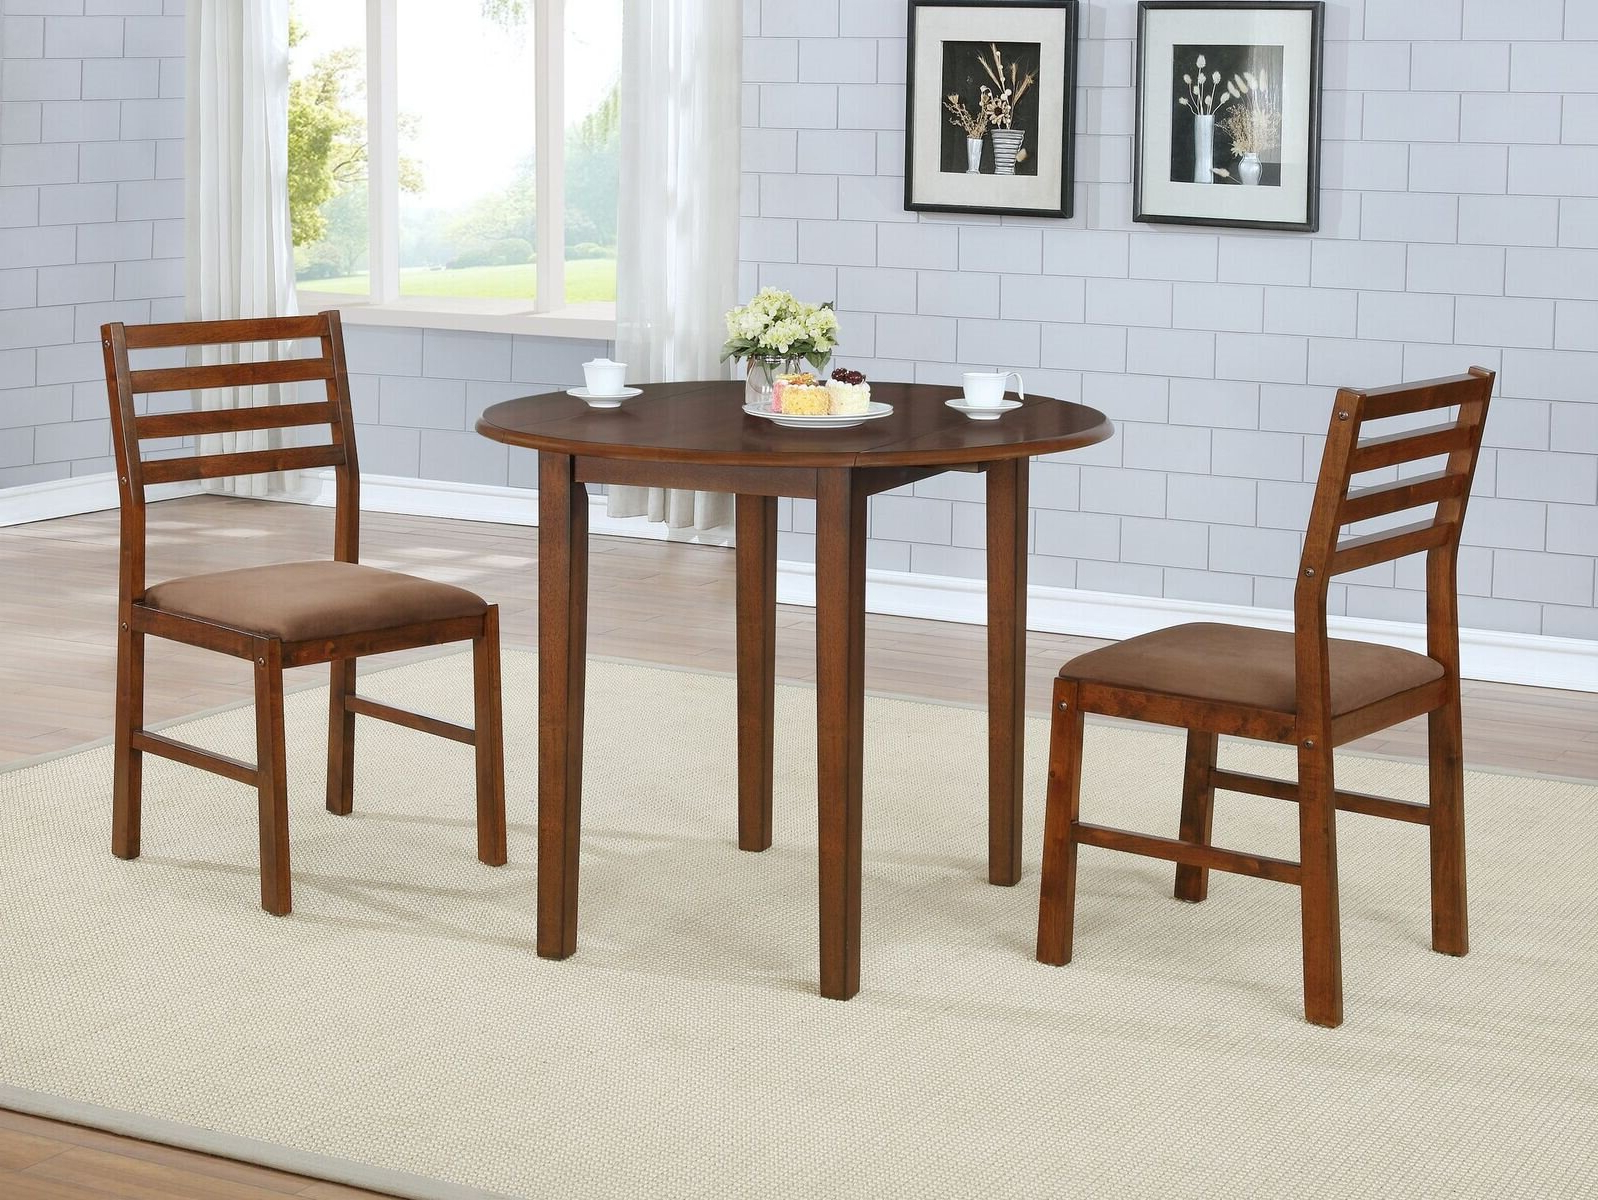 Transitional Drop Leaf Casual Dining Tables Within Most Current Winston Porter Broughton 3 Piece Drop Leaf Solid Wood Dining (View 12 of 25)